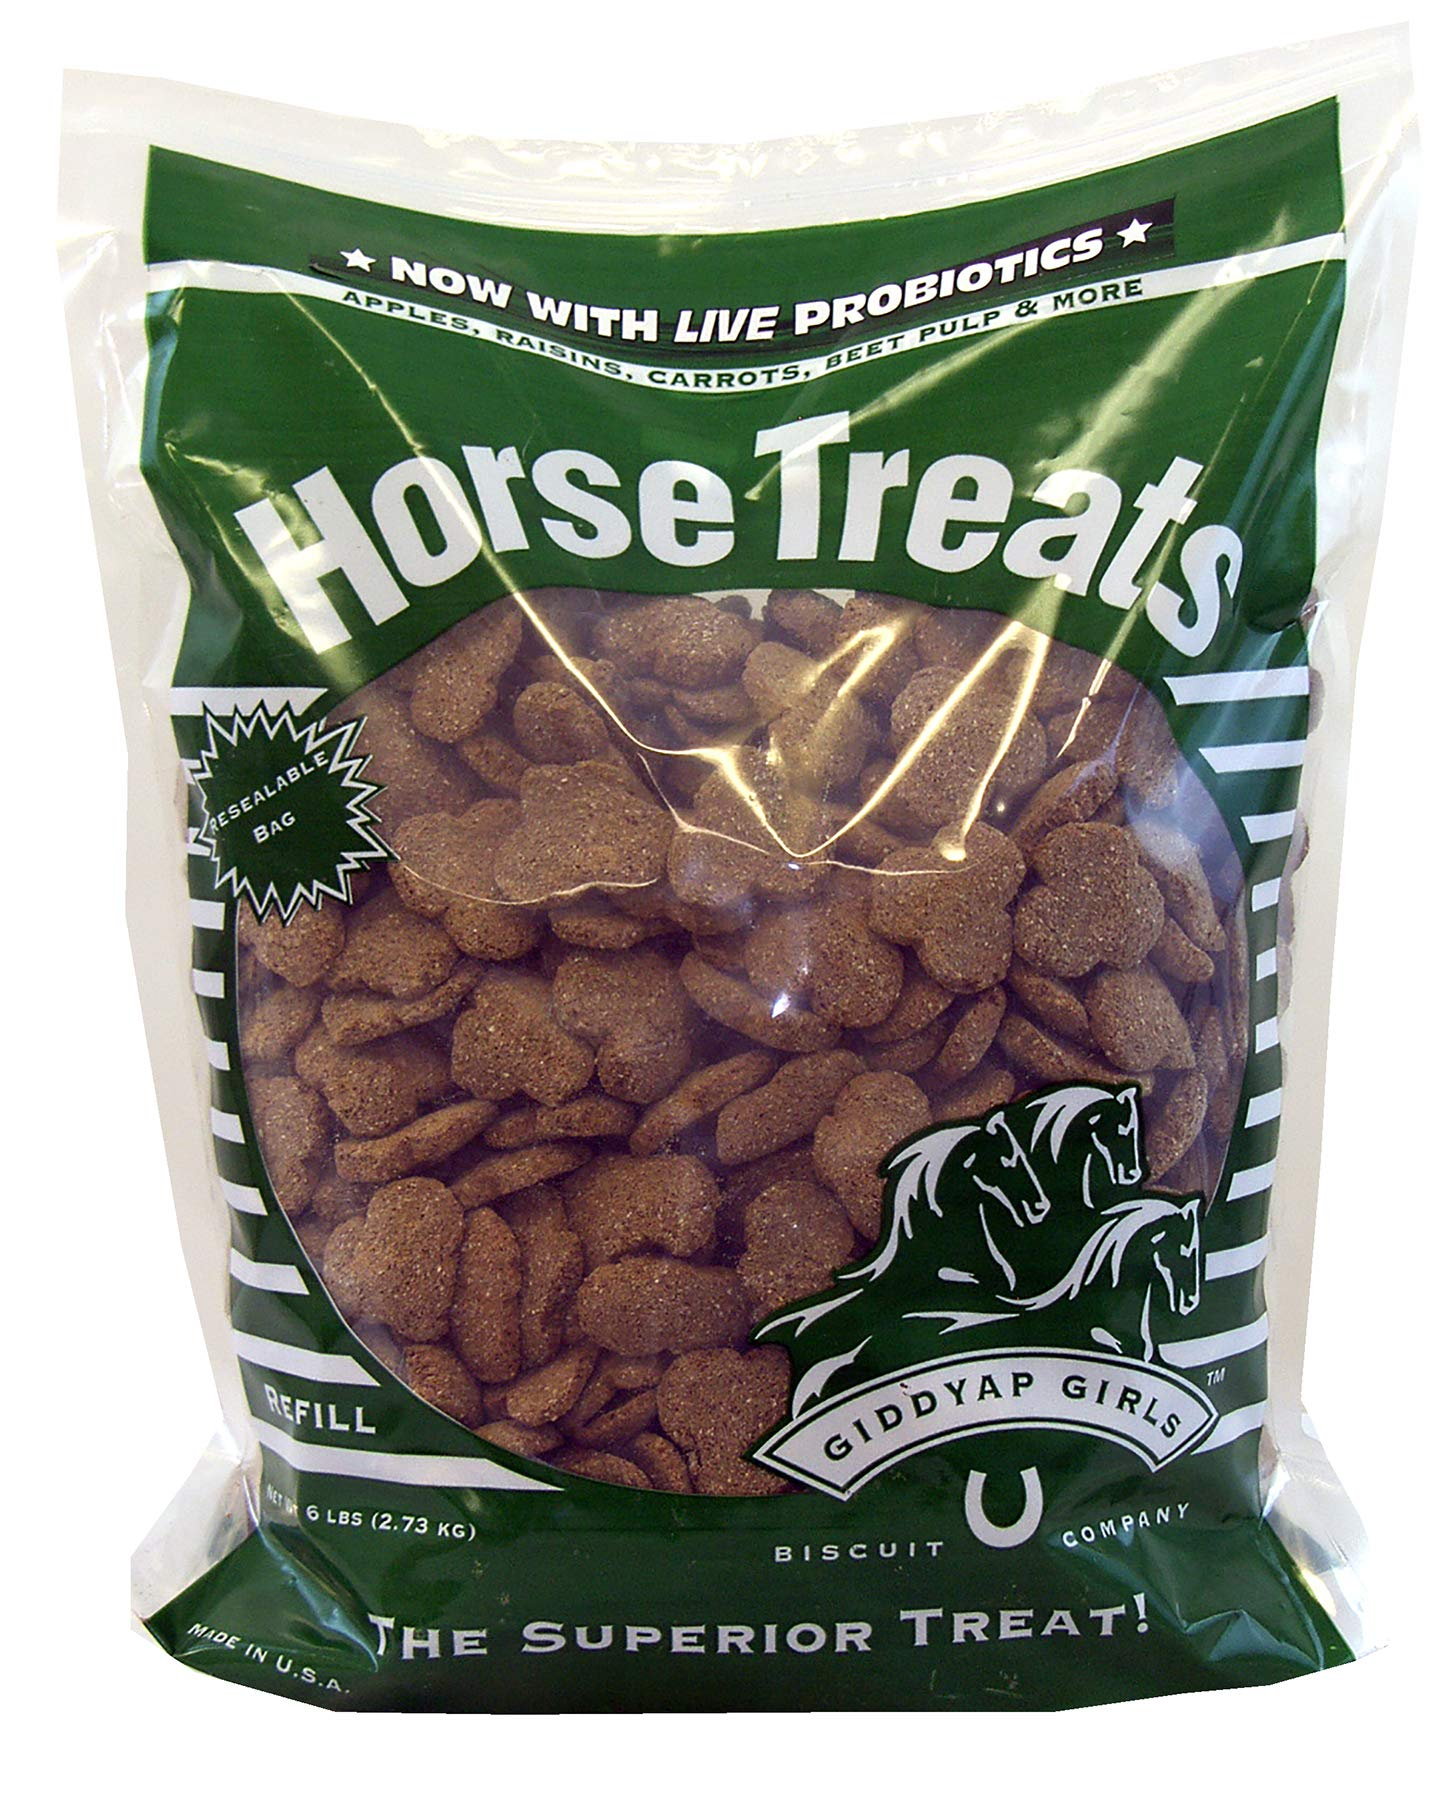 Giddyap Girls Premium Horse Treats, 6-Pound by Giddyap Girls